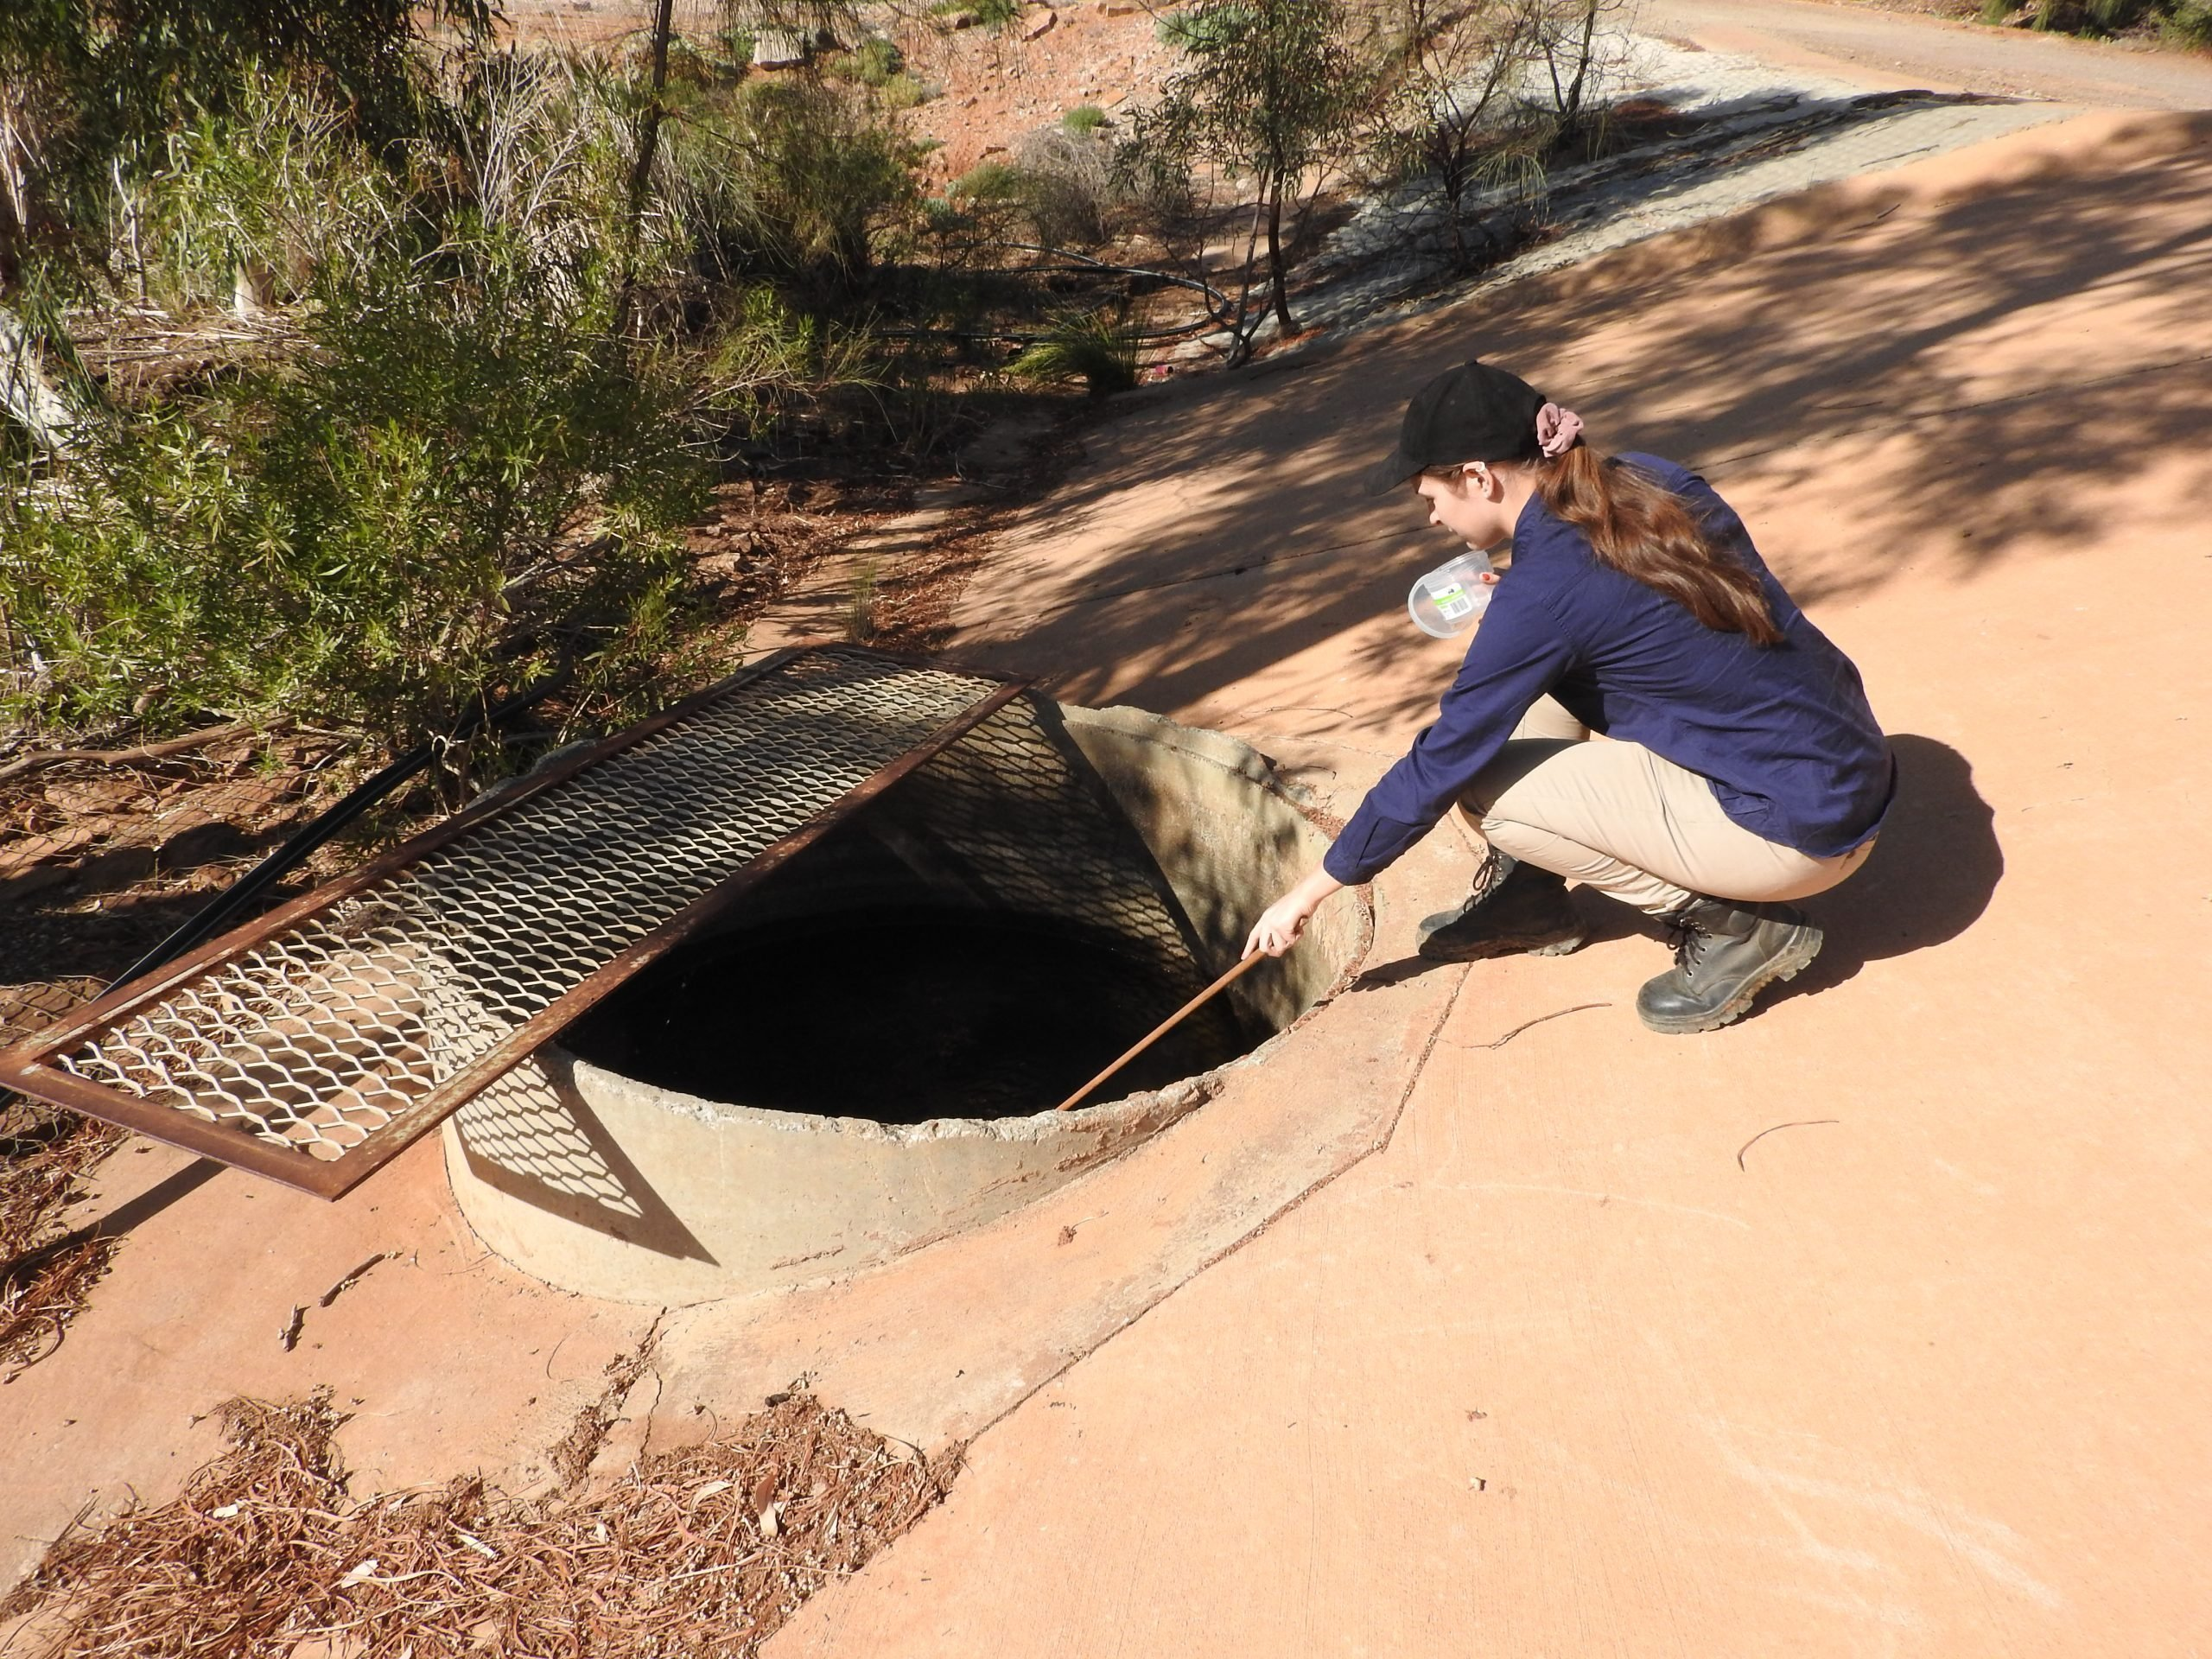 Mosquito survey - checking out draining pipes for mosquitos